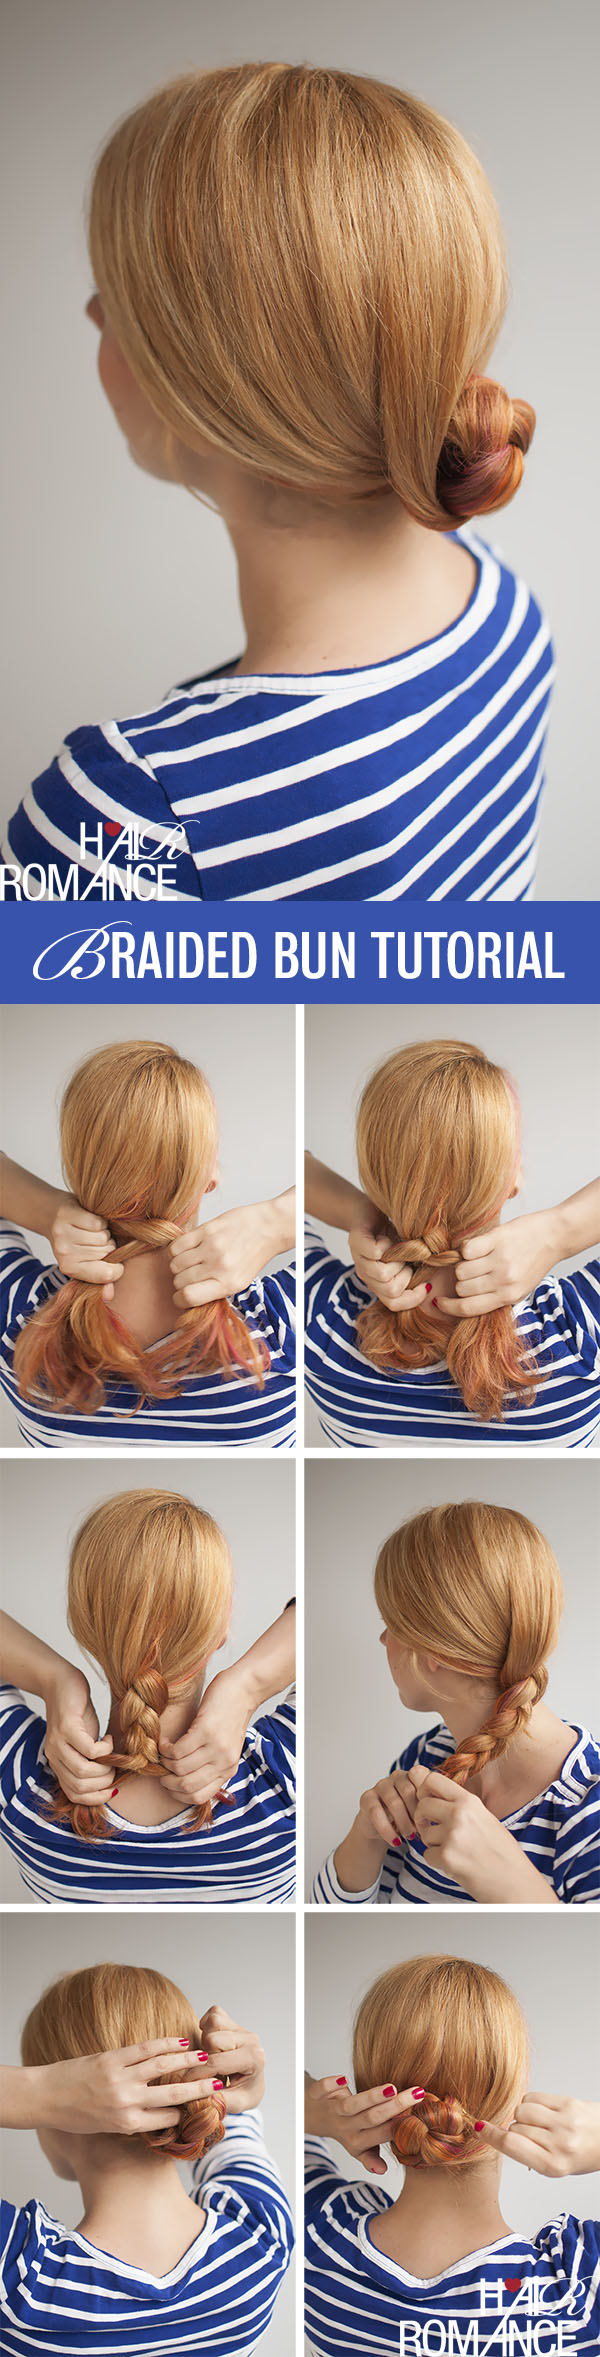 Hair Romance - Easy braided bun hair tutorial